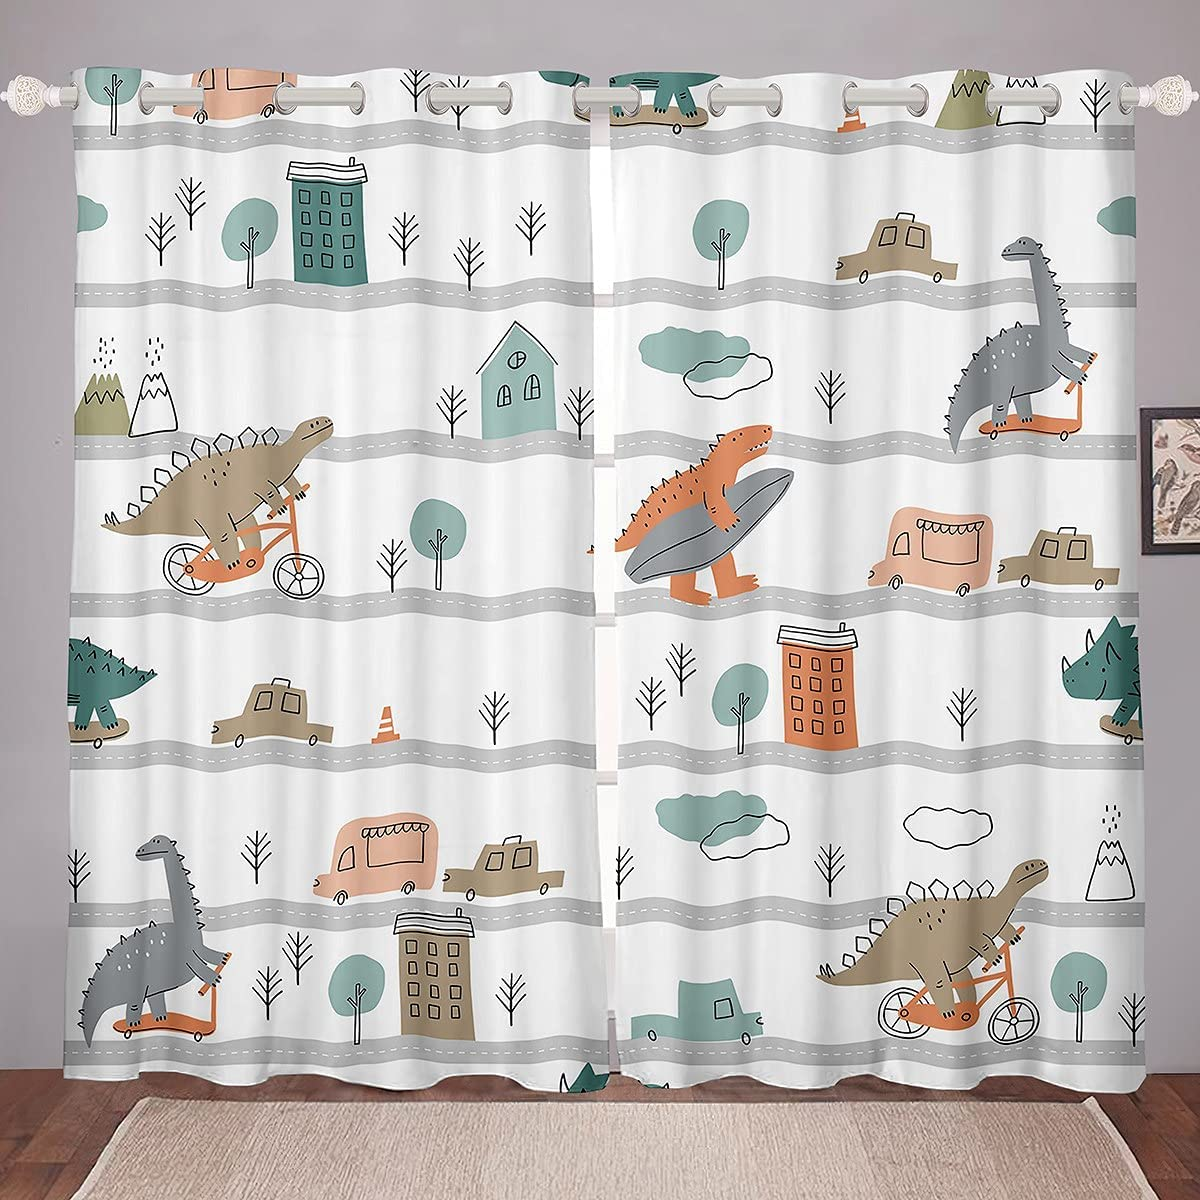 Dinosaur Window Curtains El Paso Mall Skateboard Challenge the lowest price Car Kids Boy Curtain for Bus